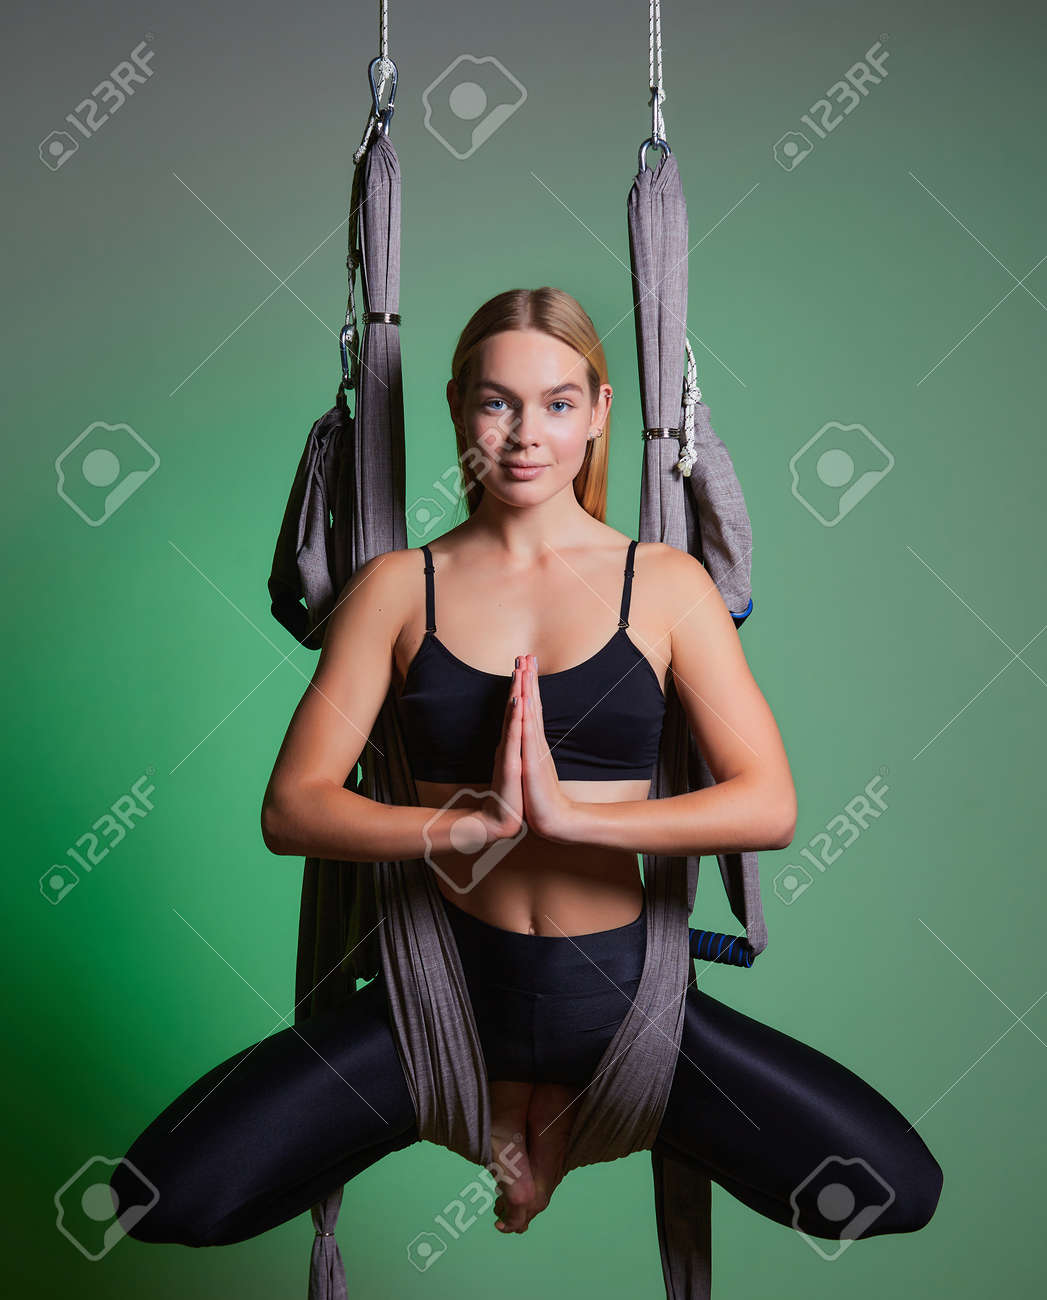 portrait young women making antigravity yoga exercises. Aerial aero fly fitness trainer workout. lotus. meditates. harmony and serenity concept - 169021157